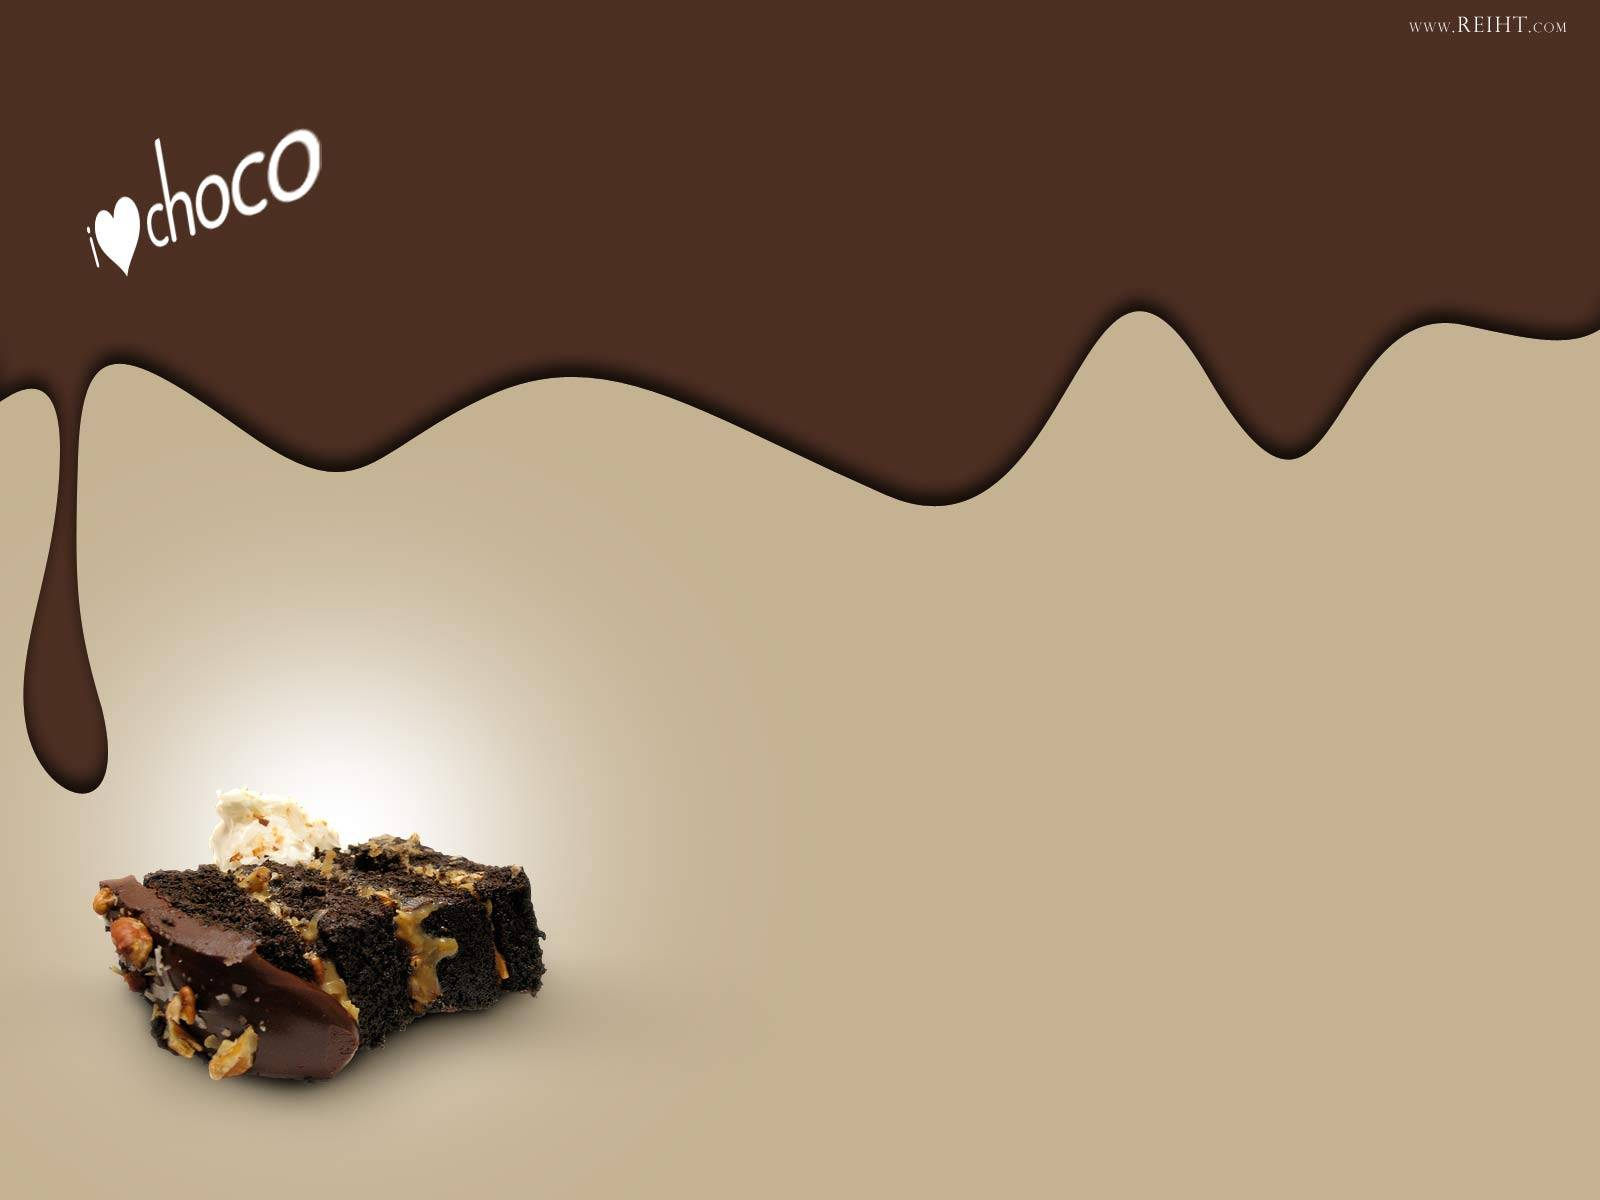 chocolate wallpapers wallpaper cave